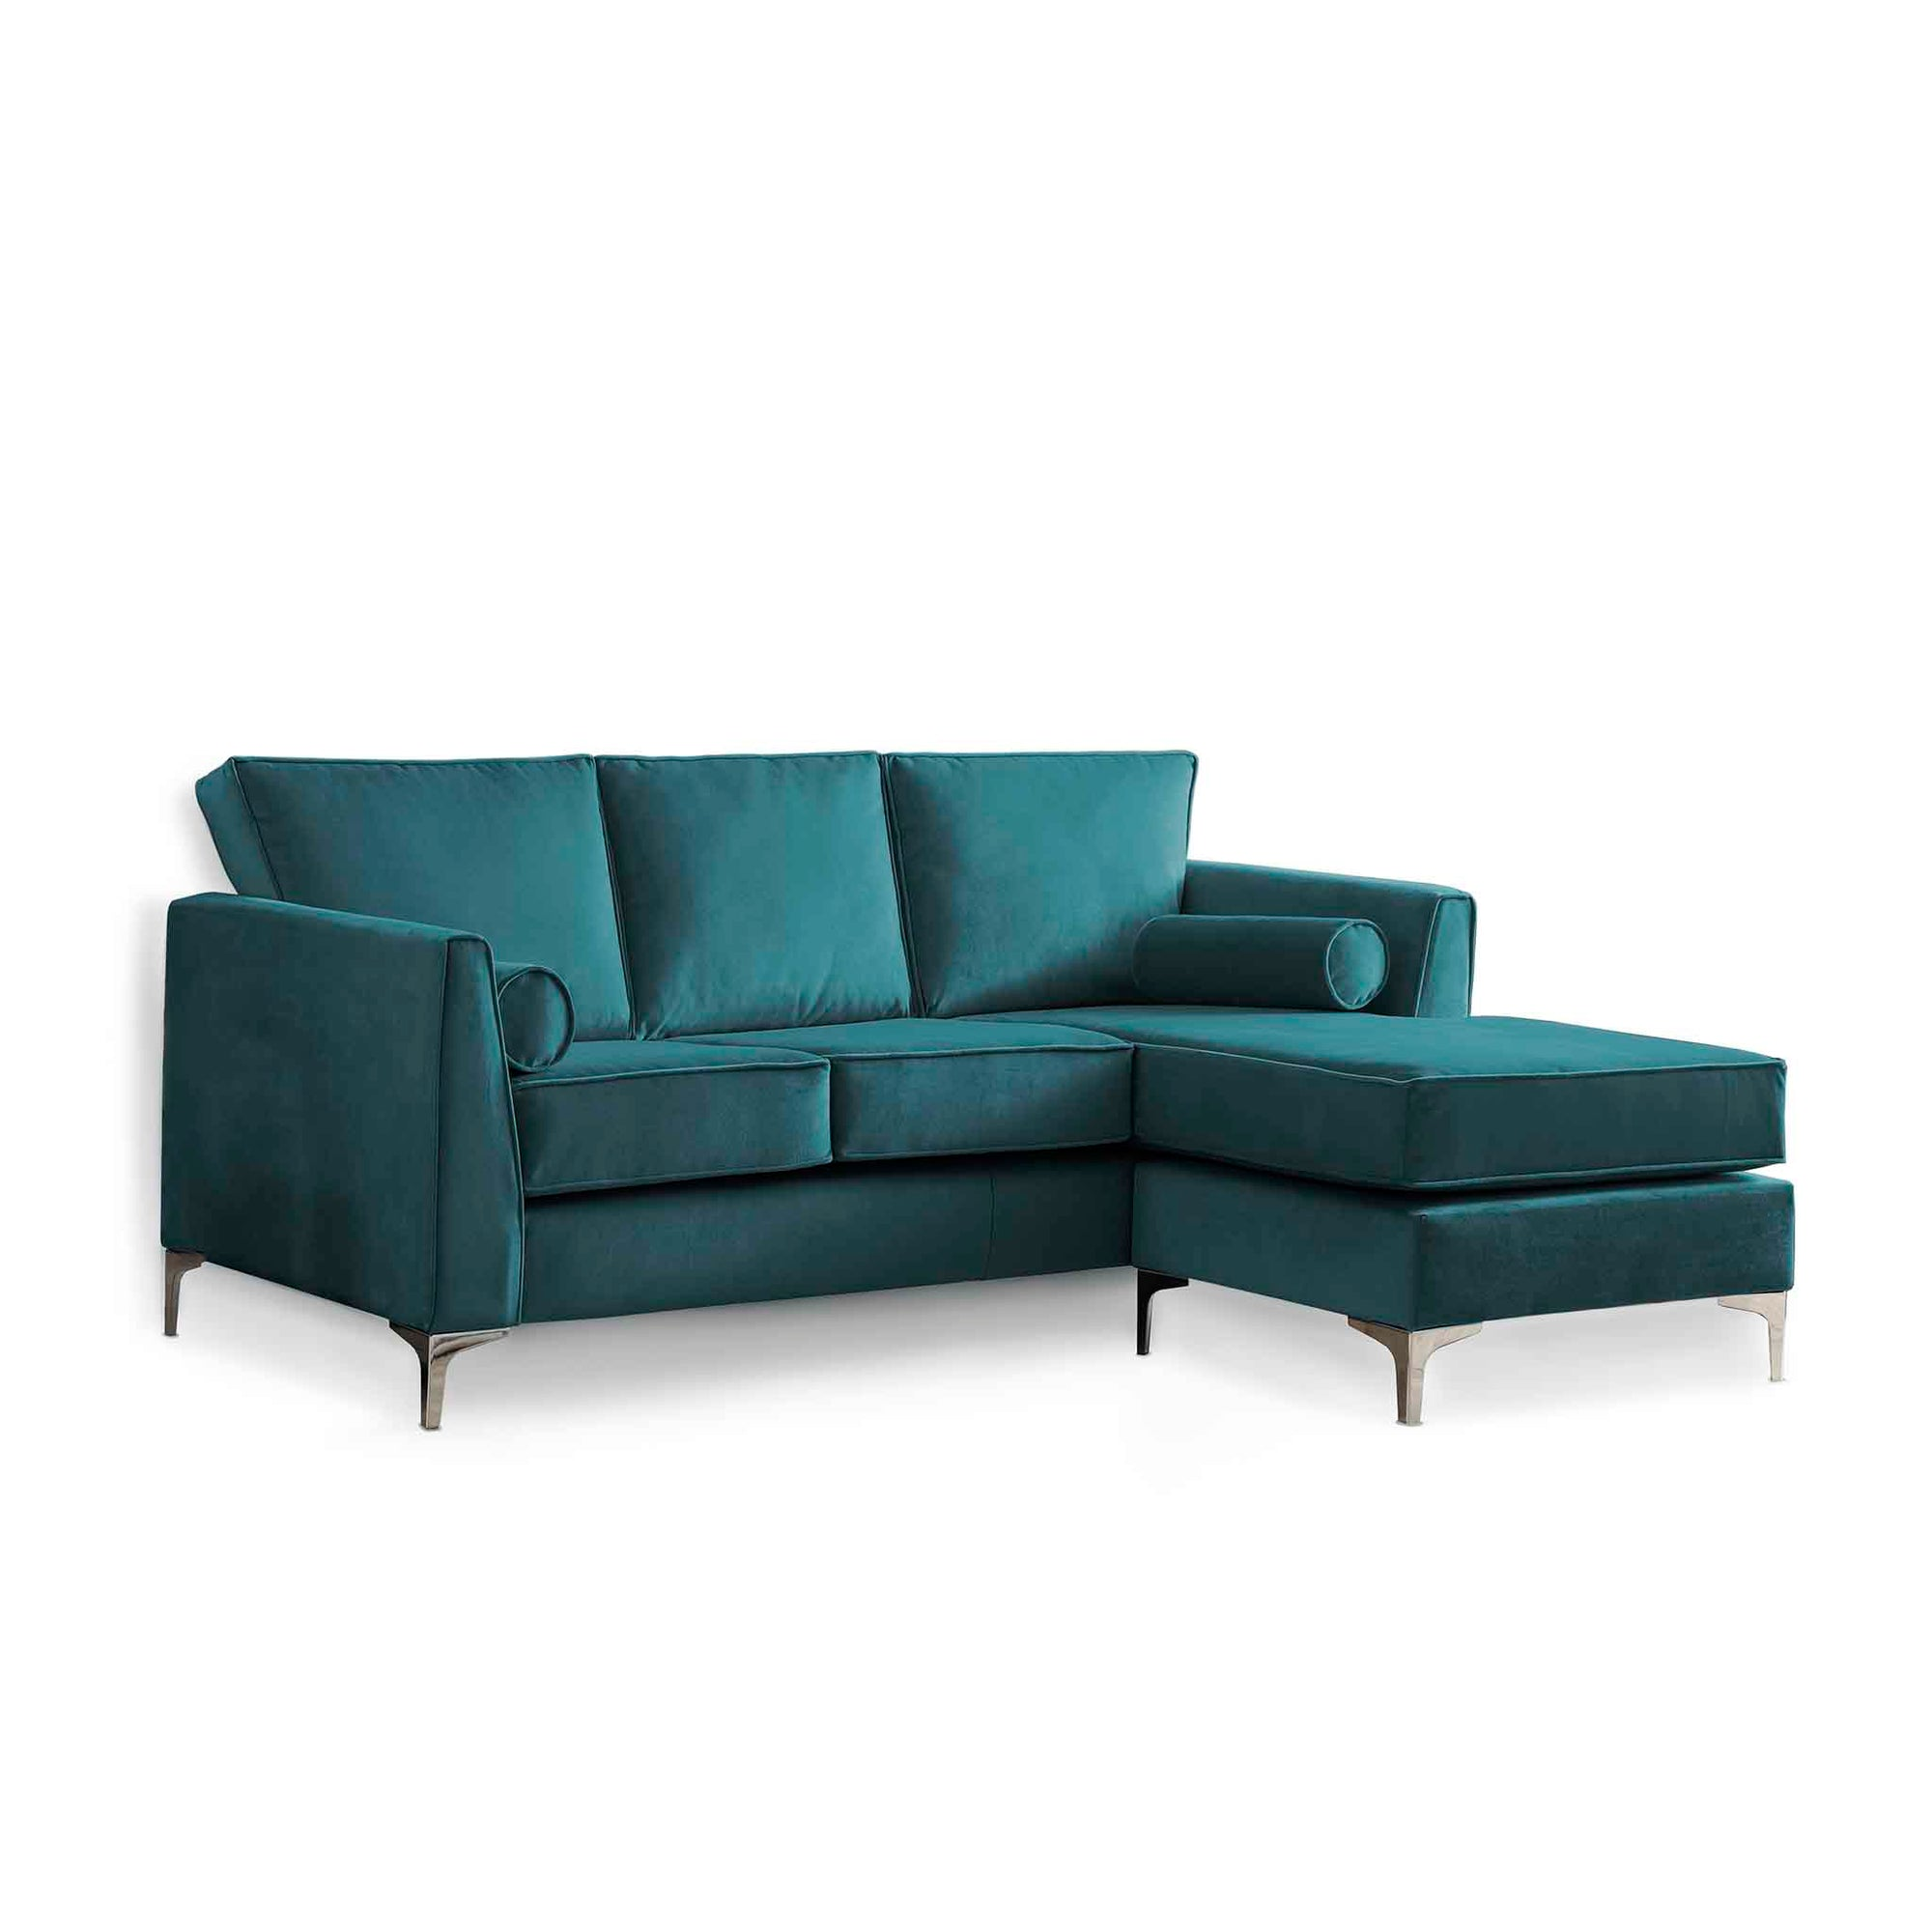 Ikon Reversible Peacock Chaise Corner Sofa by Roseland Furniture